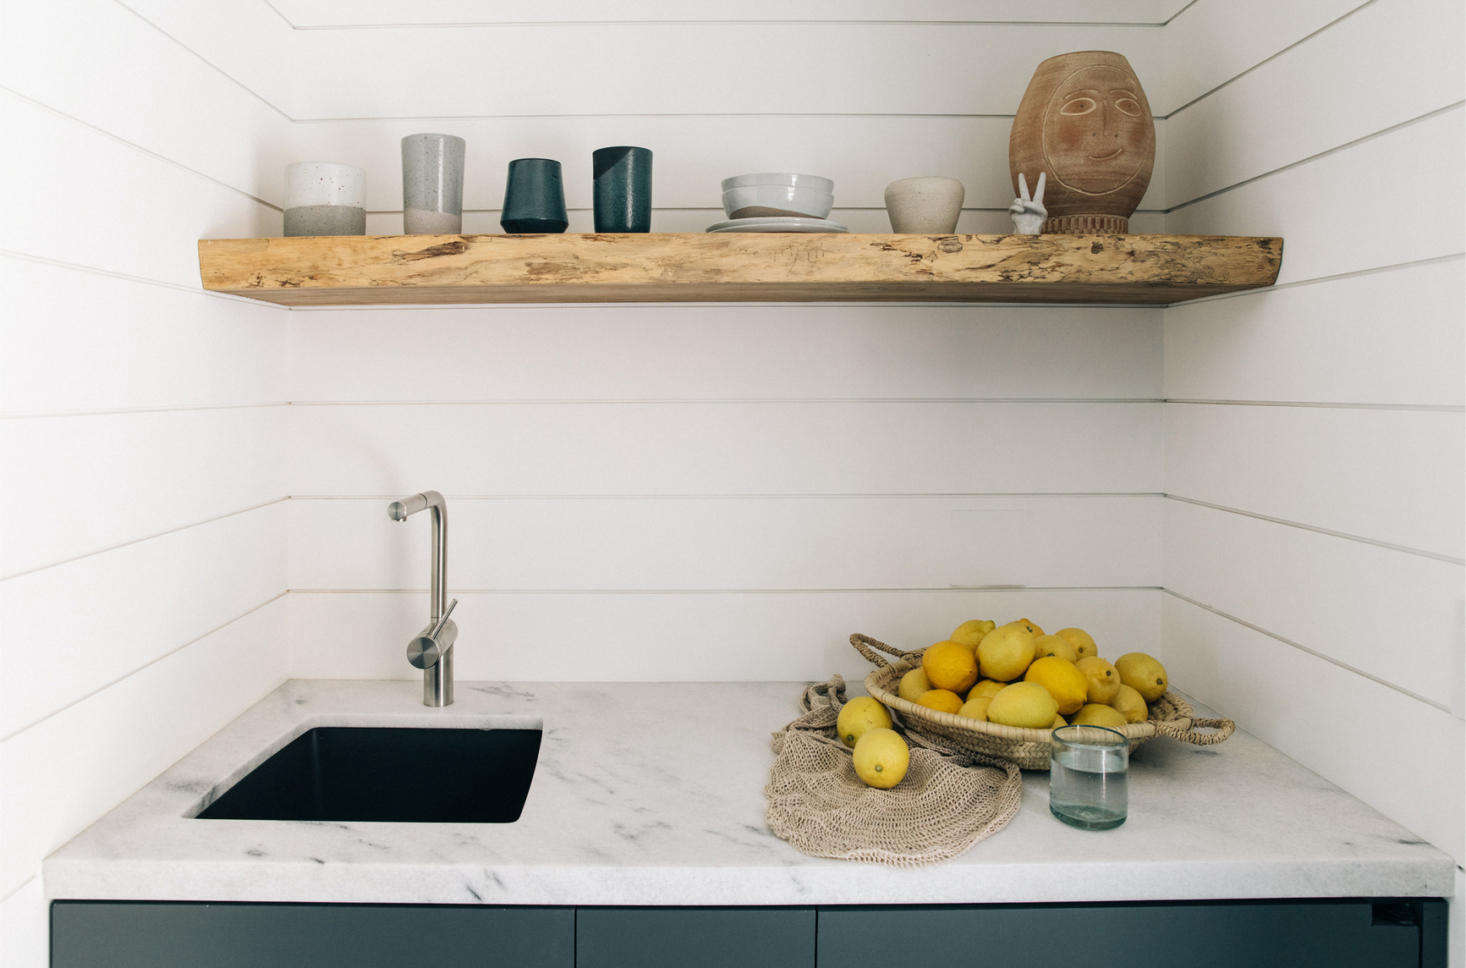 The Surfrider Suite has an efficient kitchenette in marble and tongue-and-groove cladding.